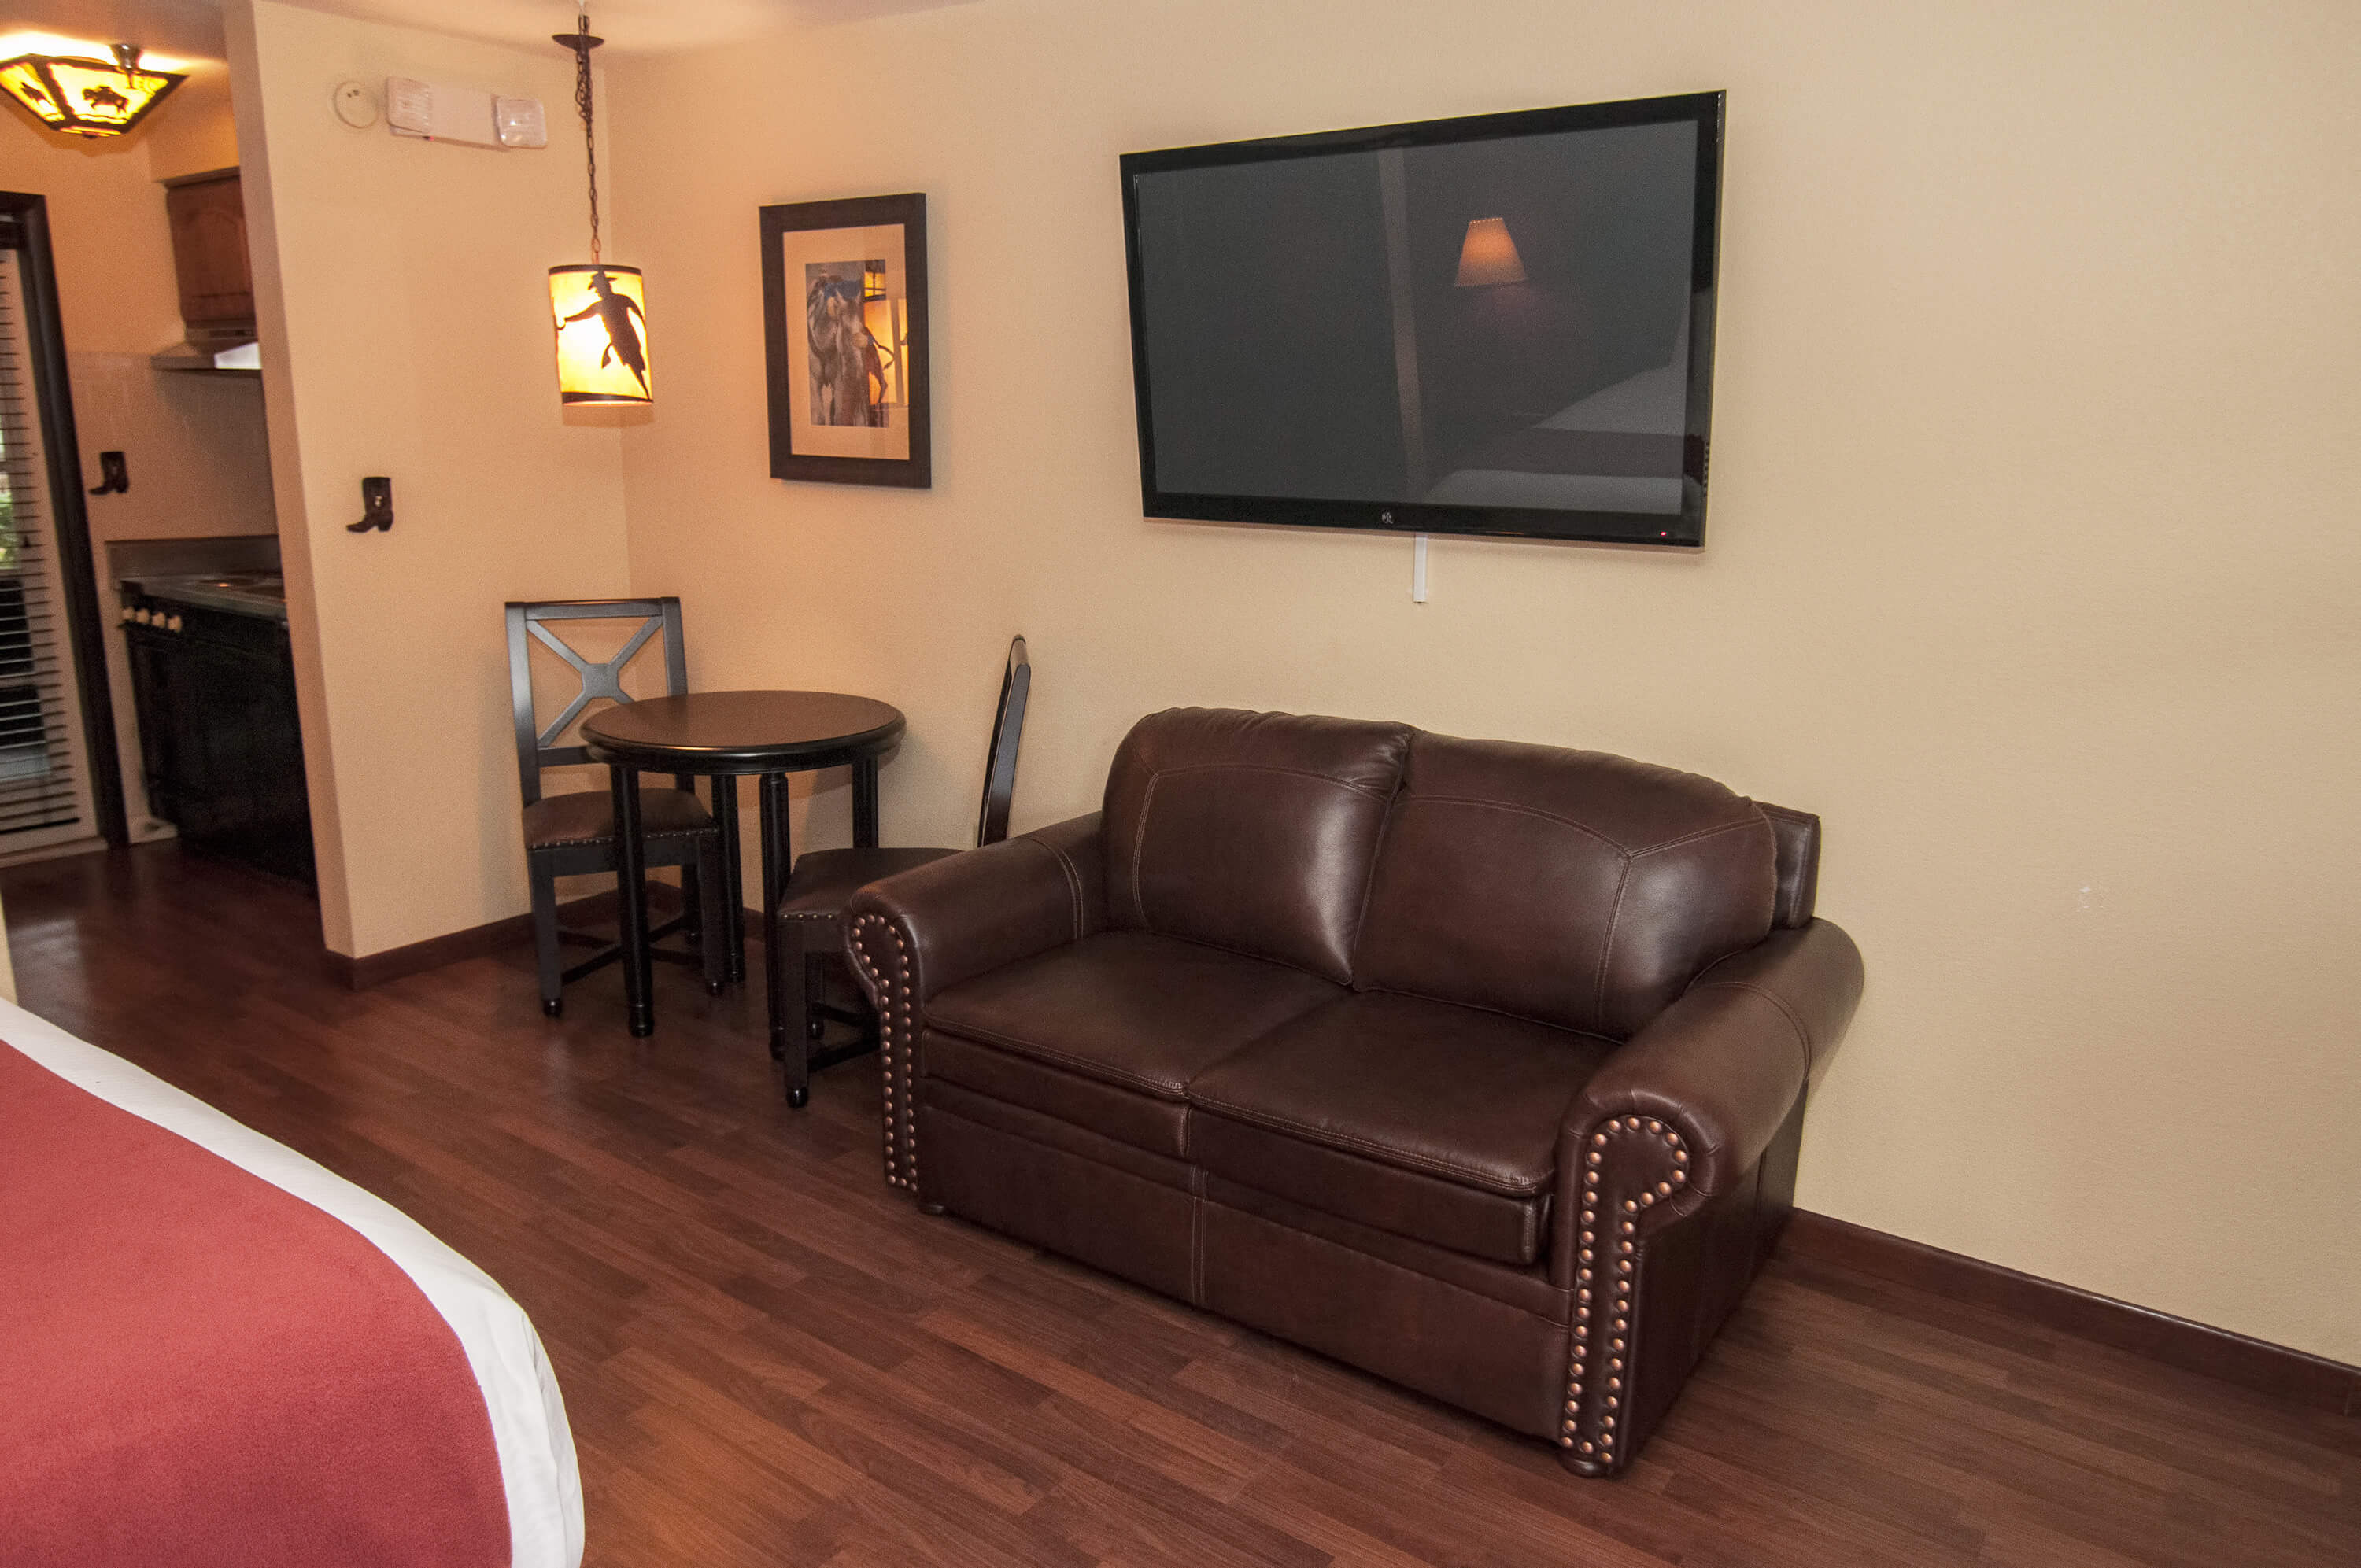 Rustic Furnishings in the Lodge Suite |  Westgate River Ranch Resort & Rodeo | Westgate Resorts